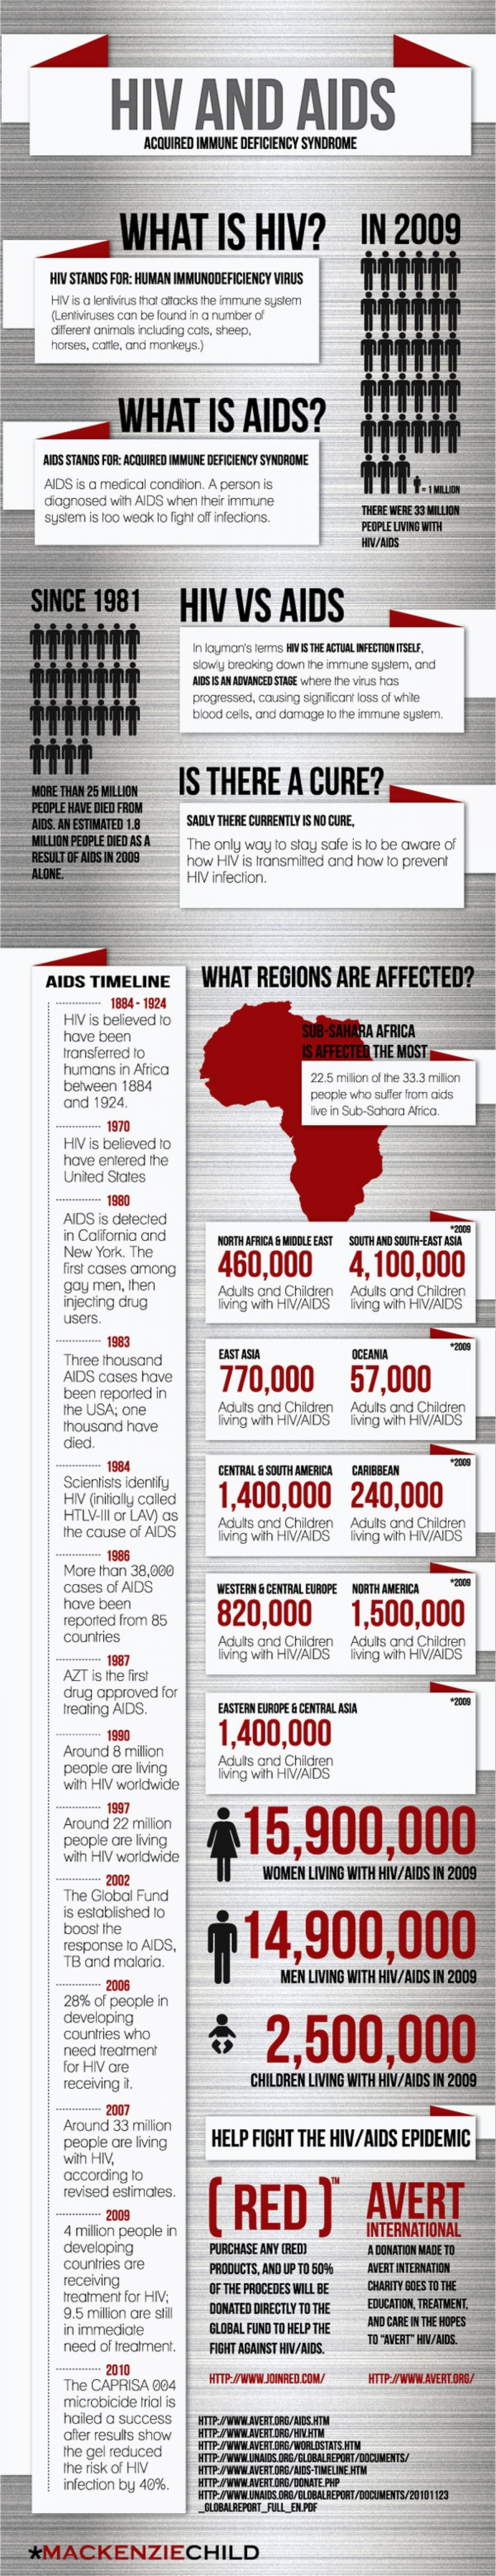 aids treatment in europe - 600×3114